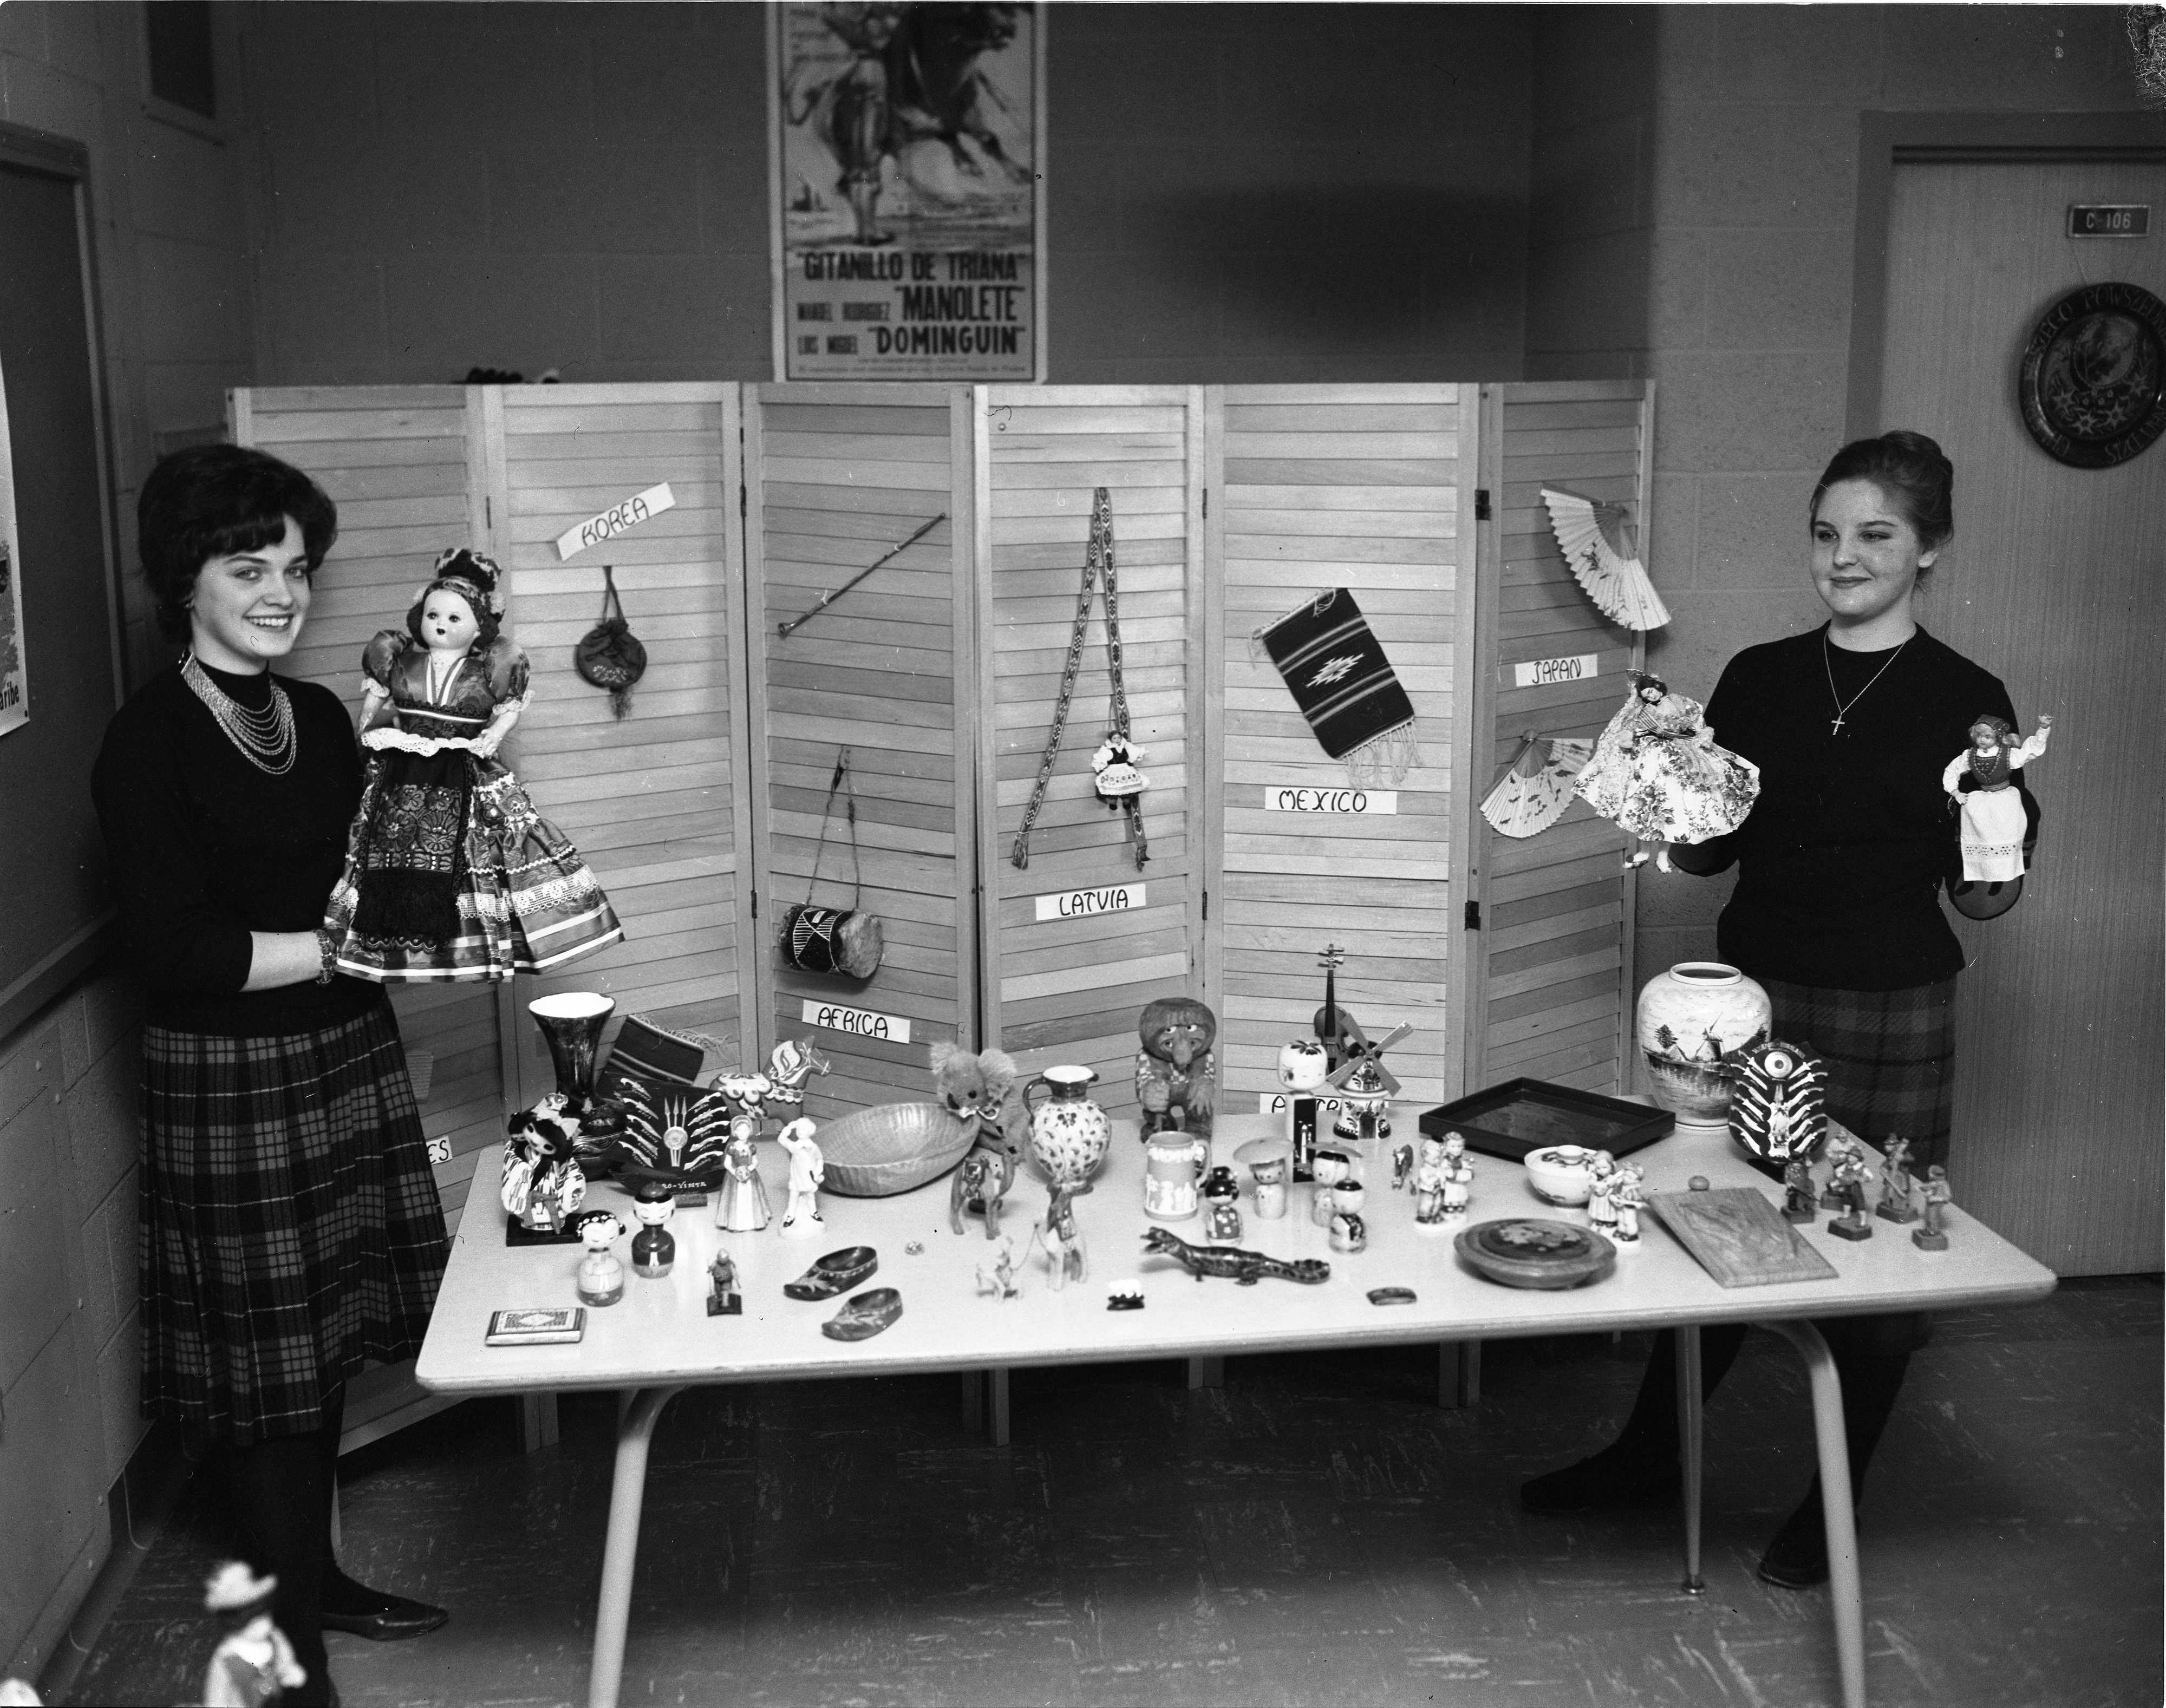 Ann Arbor High School Students, Pegue Habsburg & Karen Braun, At Display Table For Youth For Understanding 10th Anniversary, March 3, 1962 image